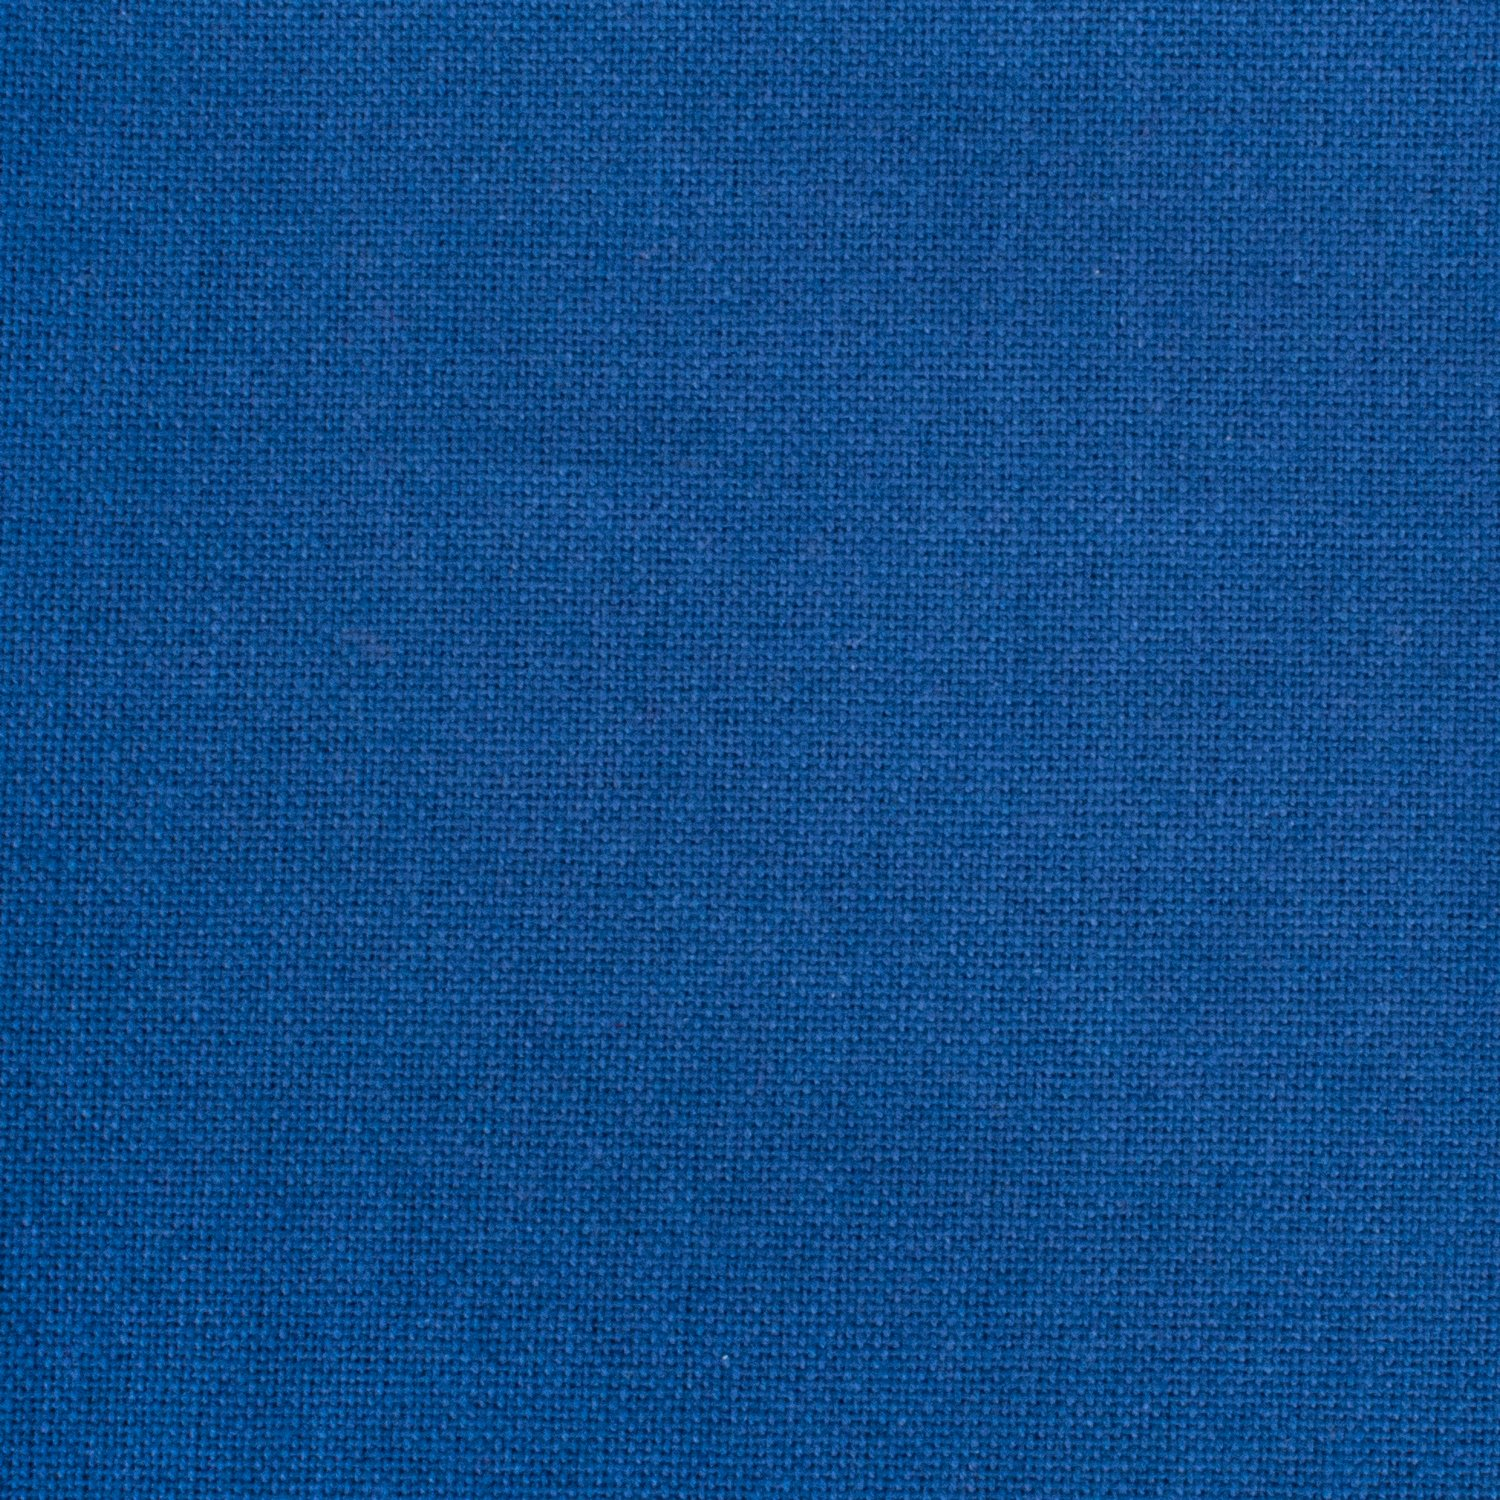 DII 100% Cotton, Oversized Basic Everyday Woven Heavyweight Napkin with Decorative Fringe for Place Settings, Family Dinners, BBQ, and Holidays (20x20'', Set of 6) Navy Blue Solid by DII (Image #3)